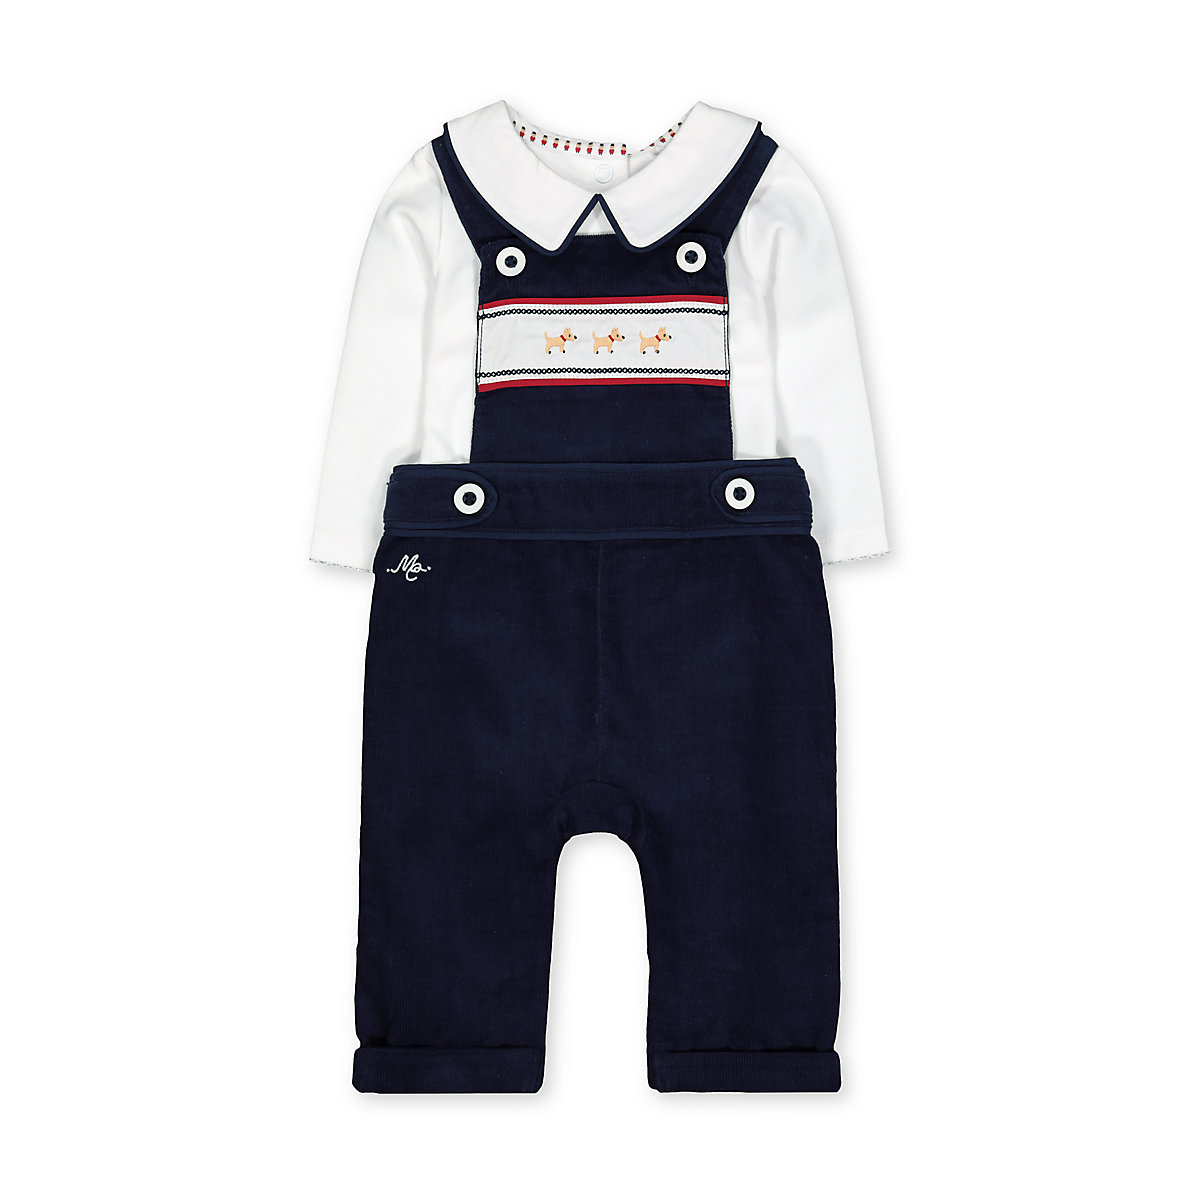 navy cord dungarees and bodysuit set